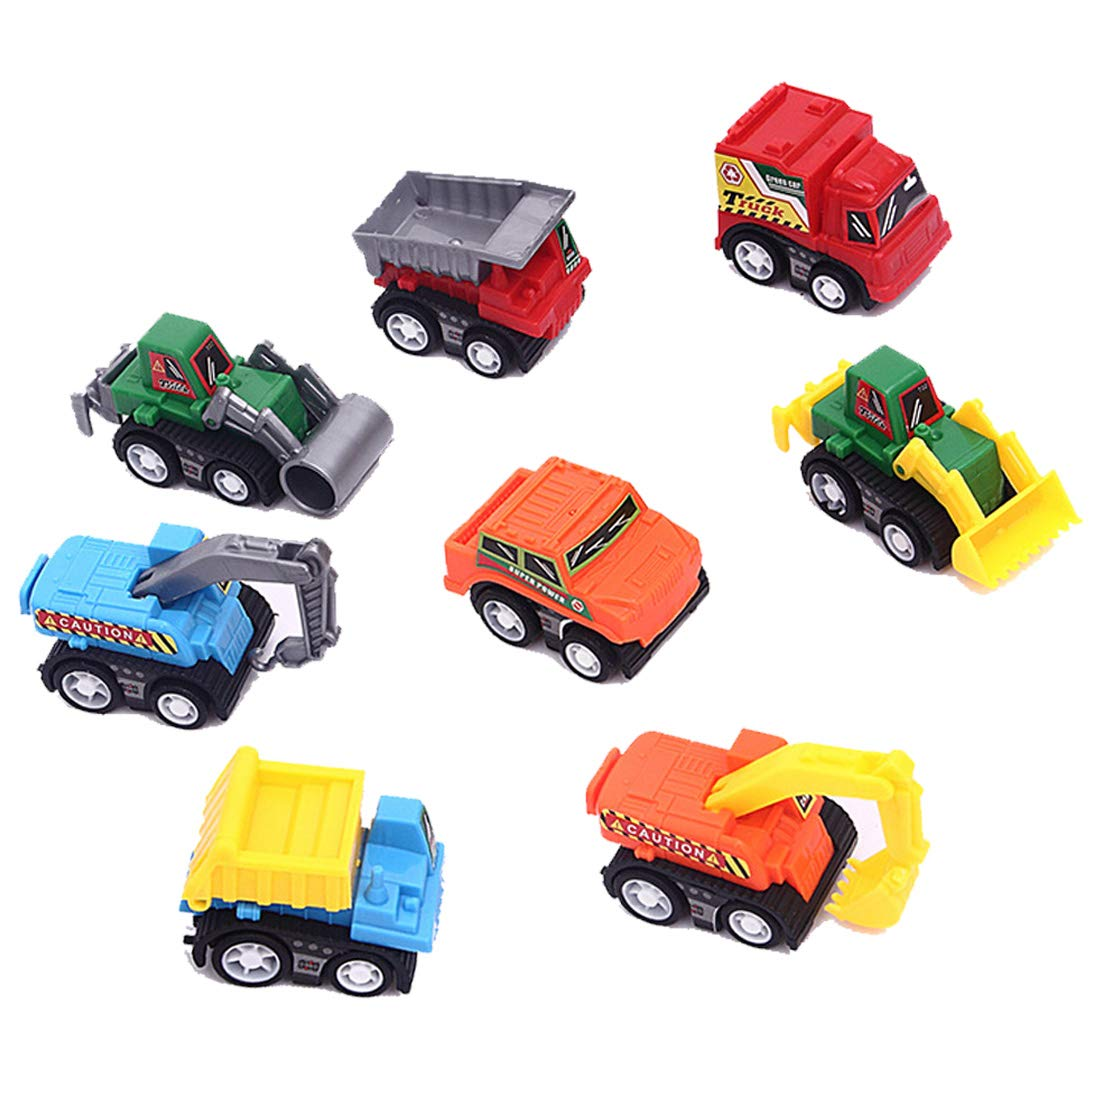 Syolee 8pcs Mini Cars Pull back and Go Vehicles Friction Powered Car Toys Classic Construction Team Vehicle Set for Children Kids Boys and Girls .